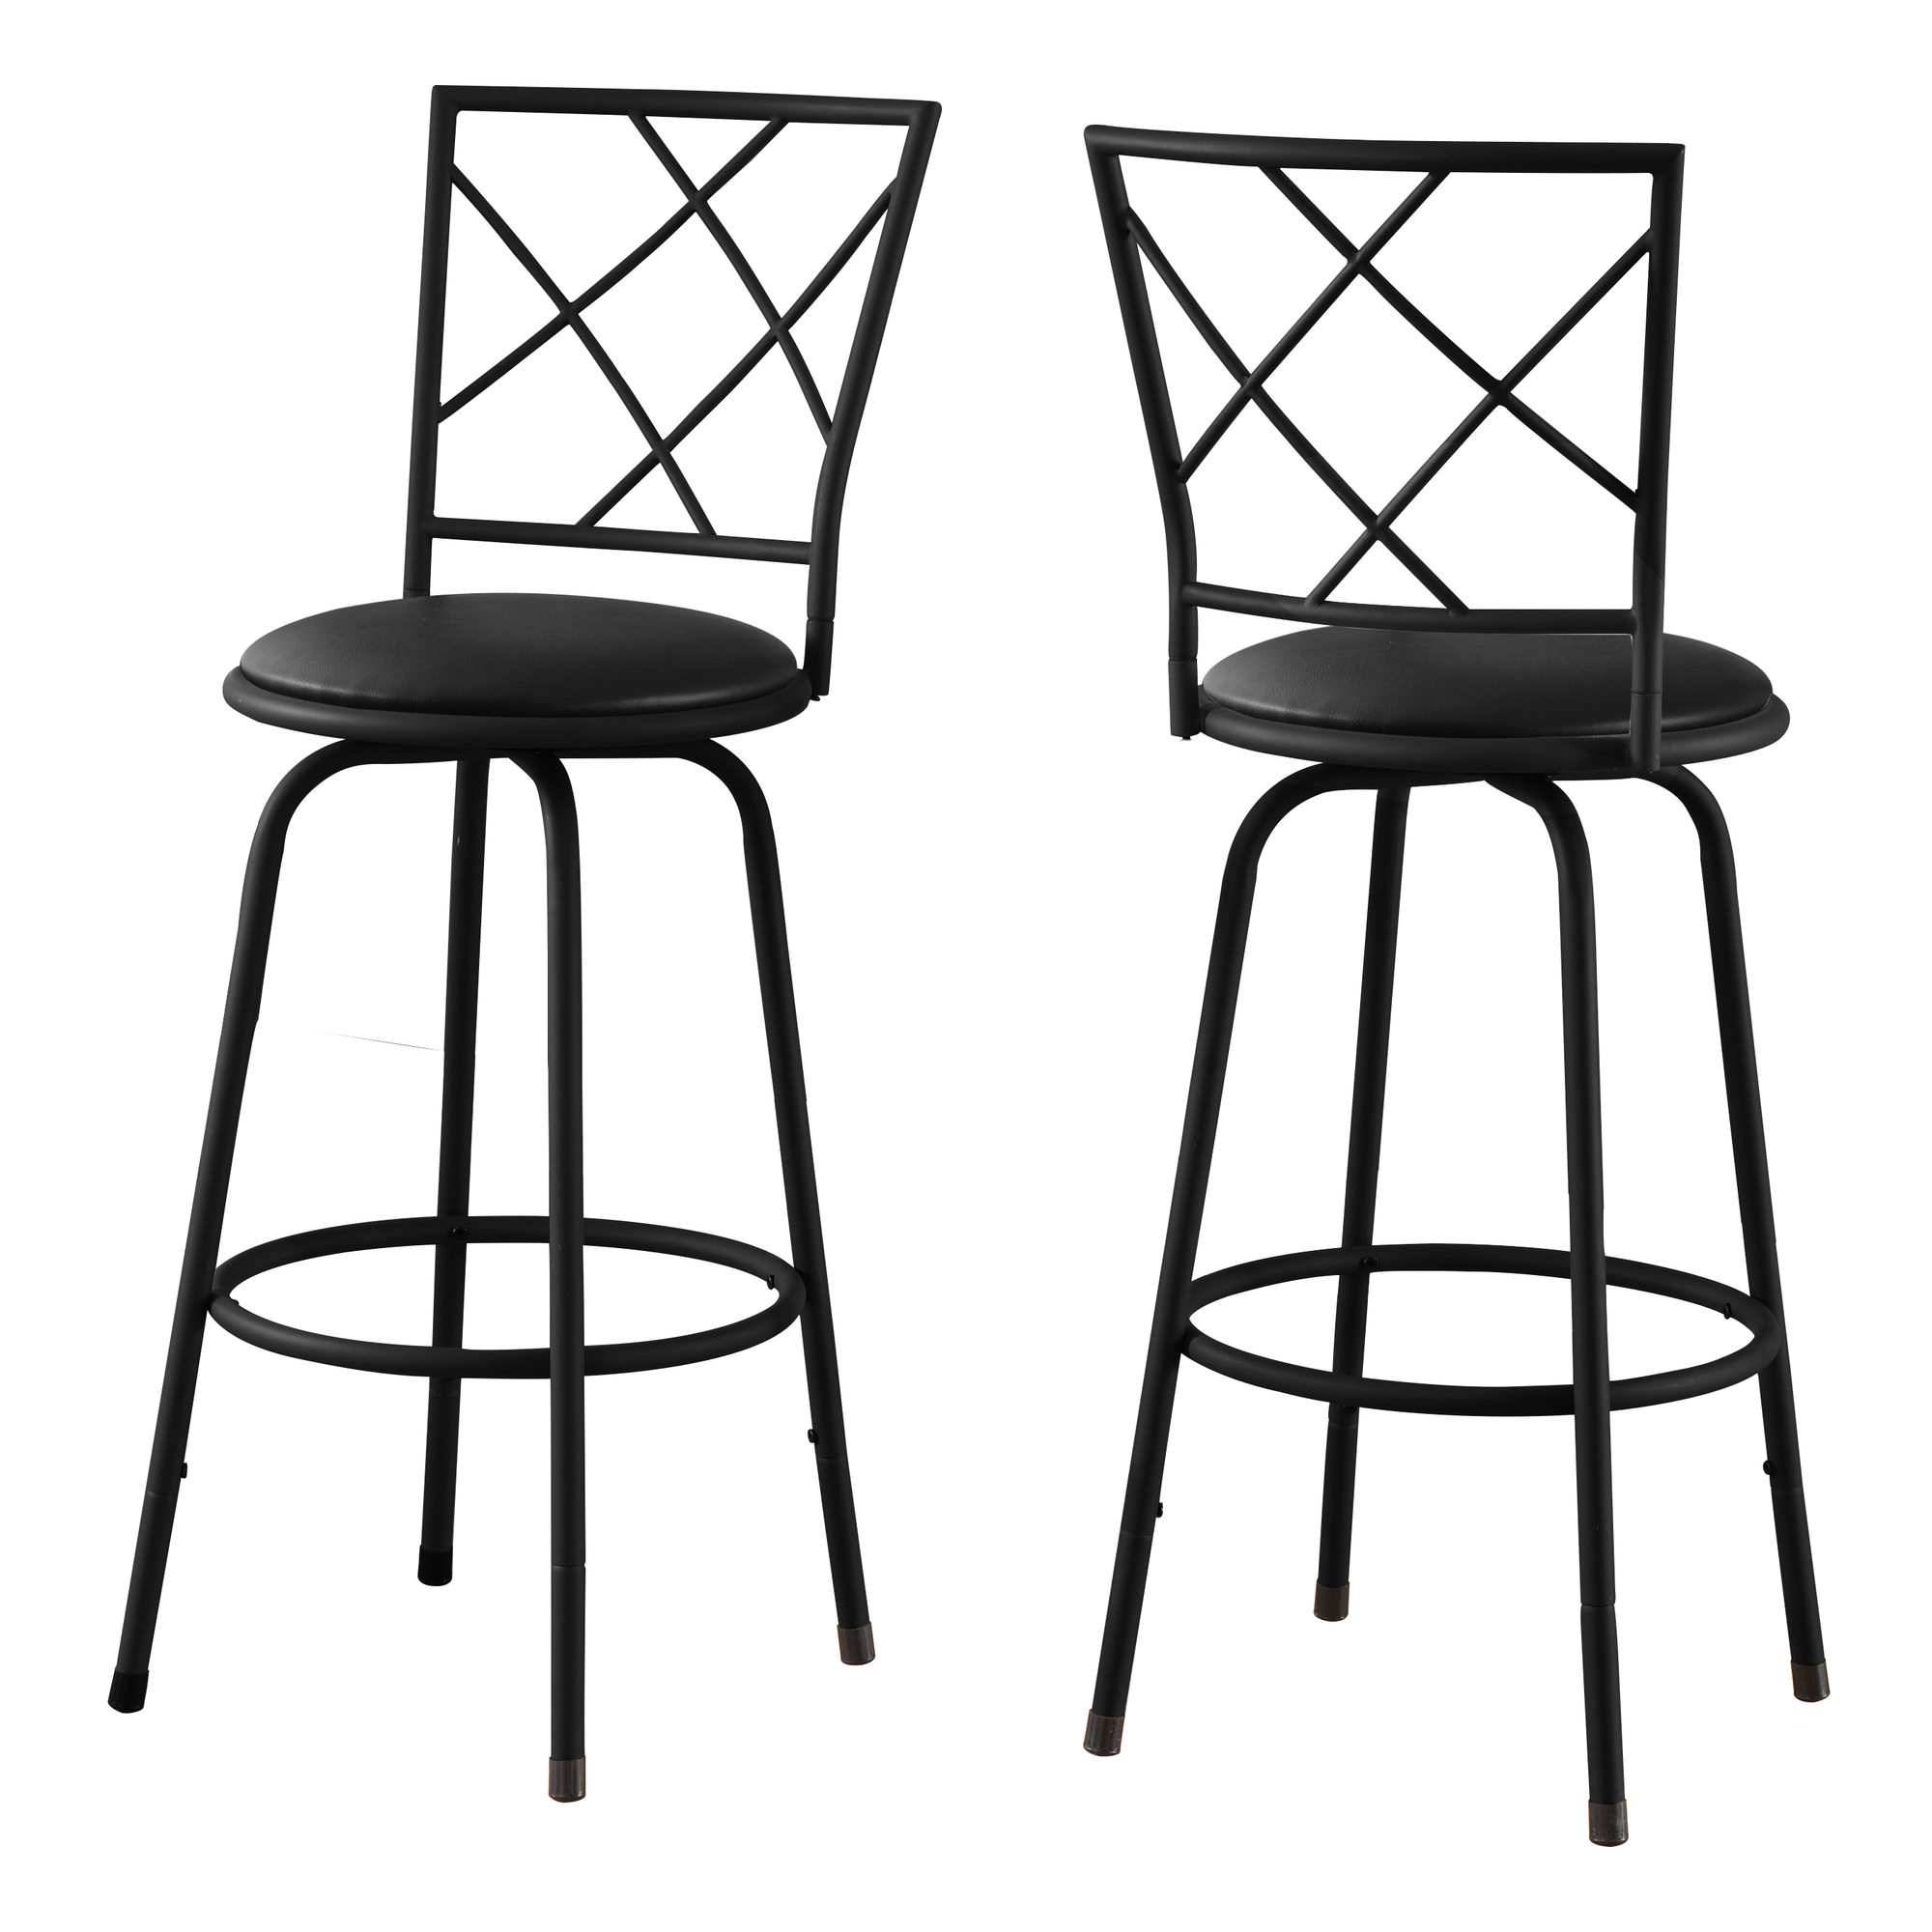 2 Piece Swivel Barstool Set with Matte Black Metal Frame and Leather-Look Seat